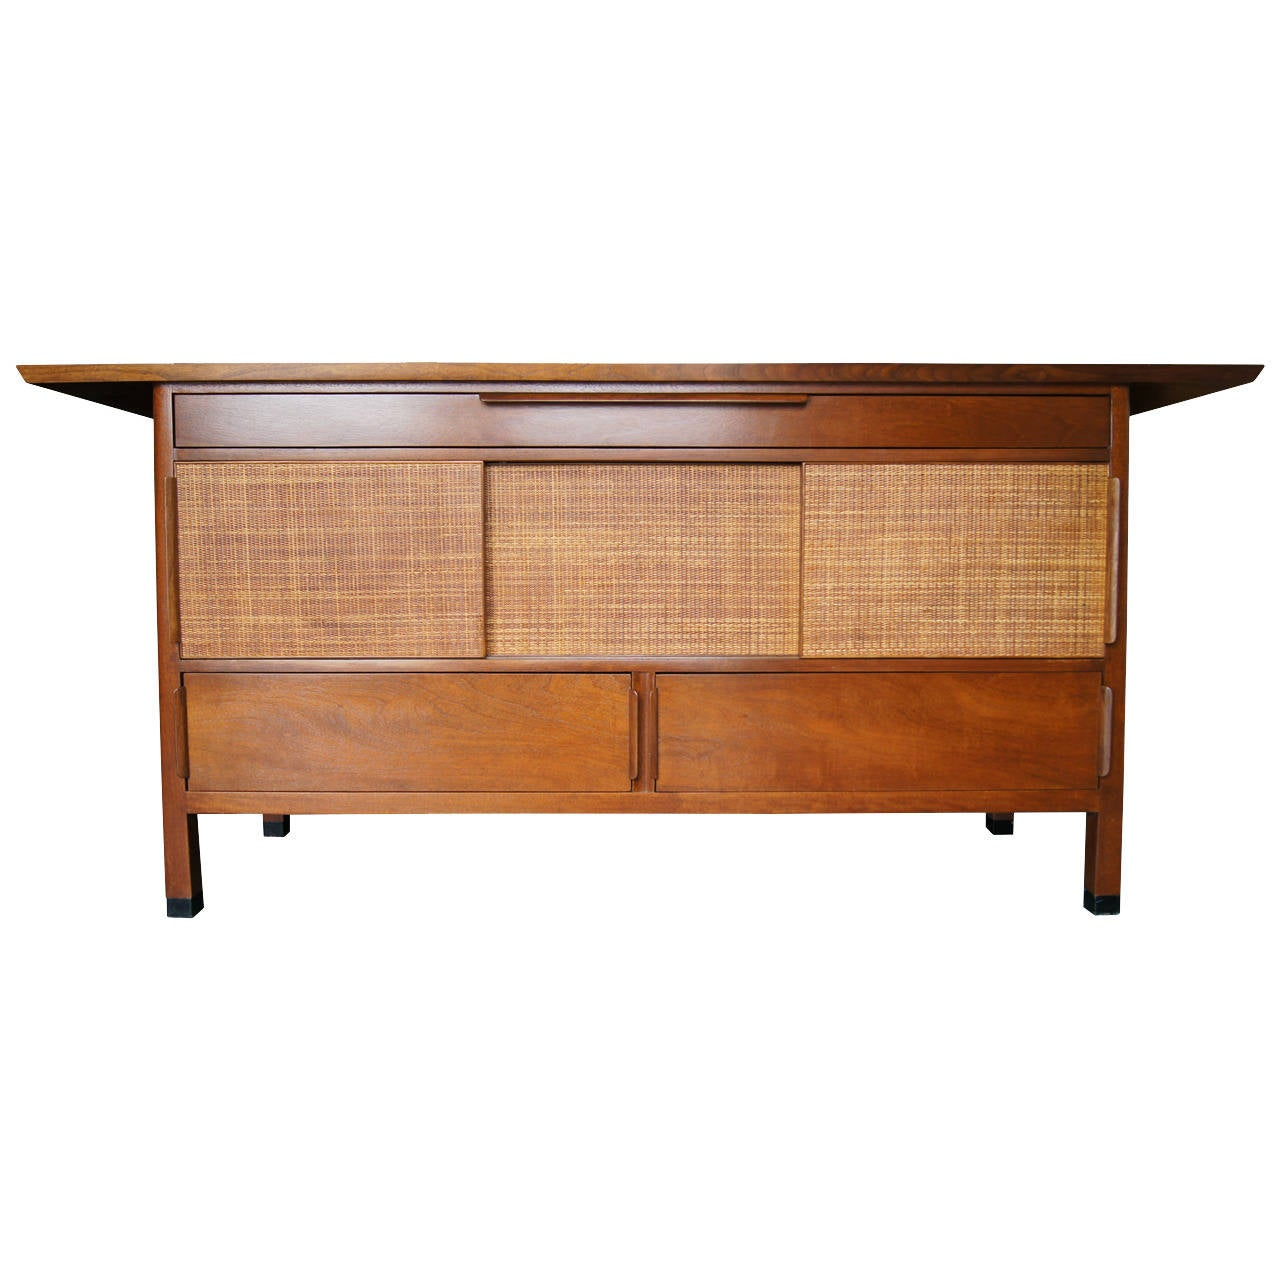 Large sideboard with rattan front by edward wormley for for Sideboard rattan